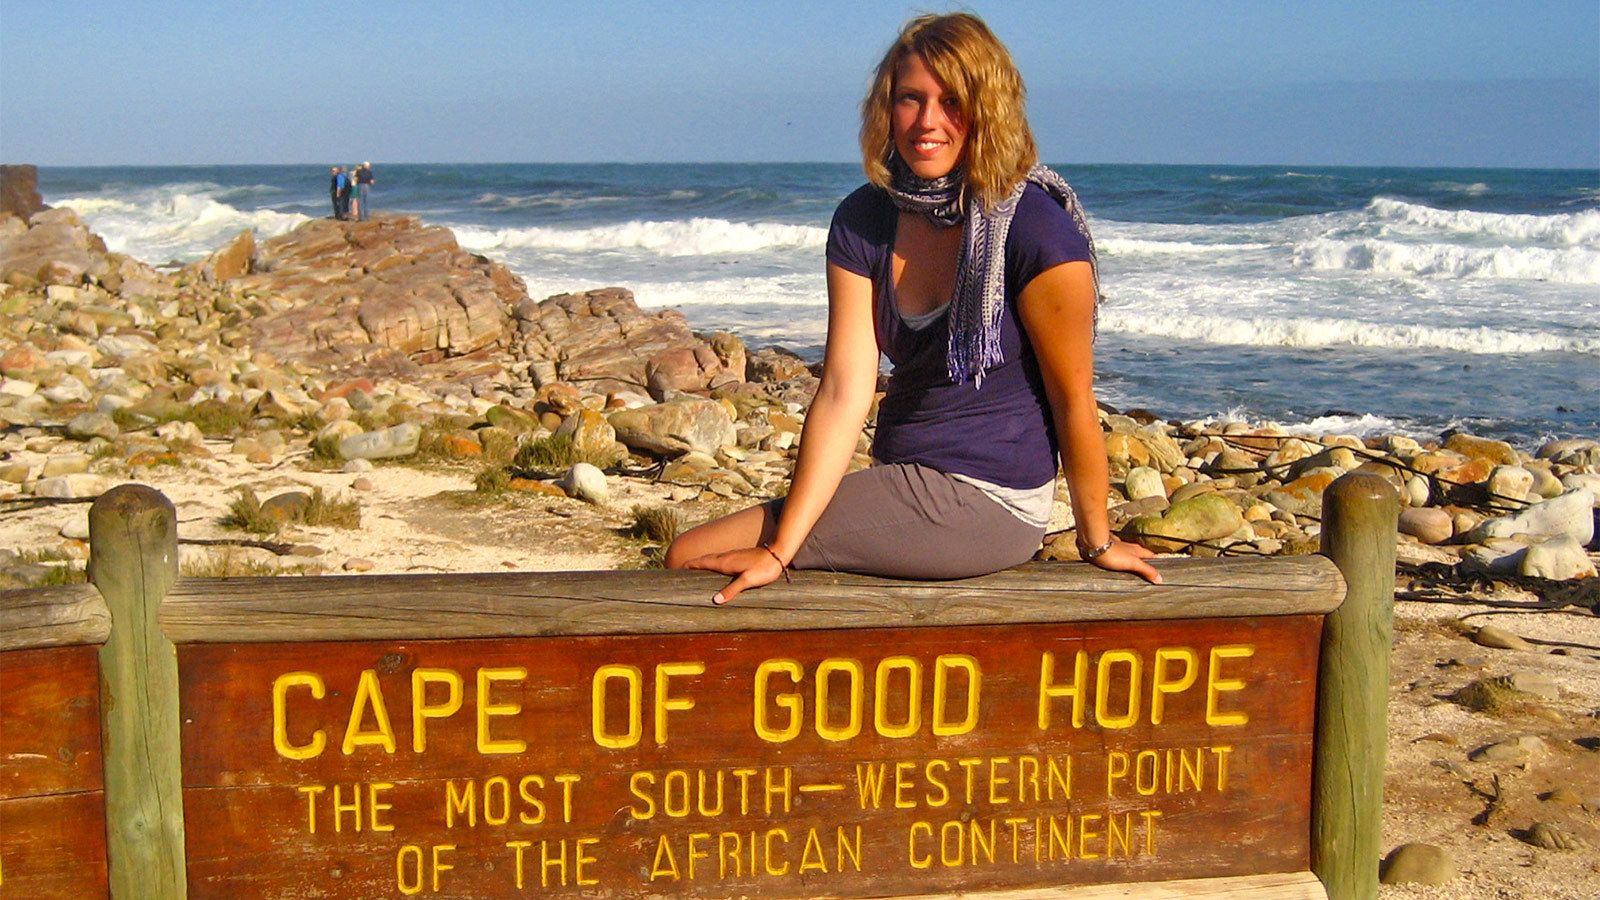 Woman taking a photo with the Cape of Good Hope sign in South Africa